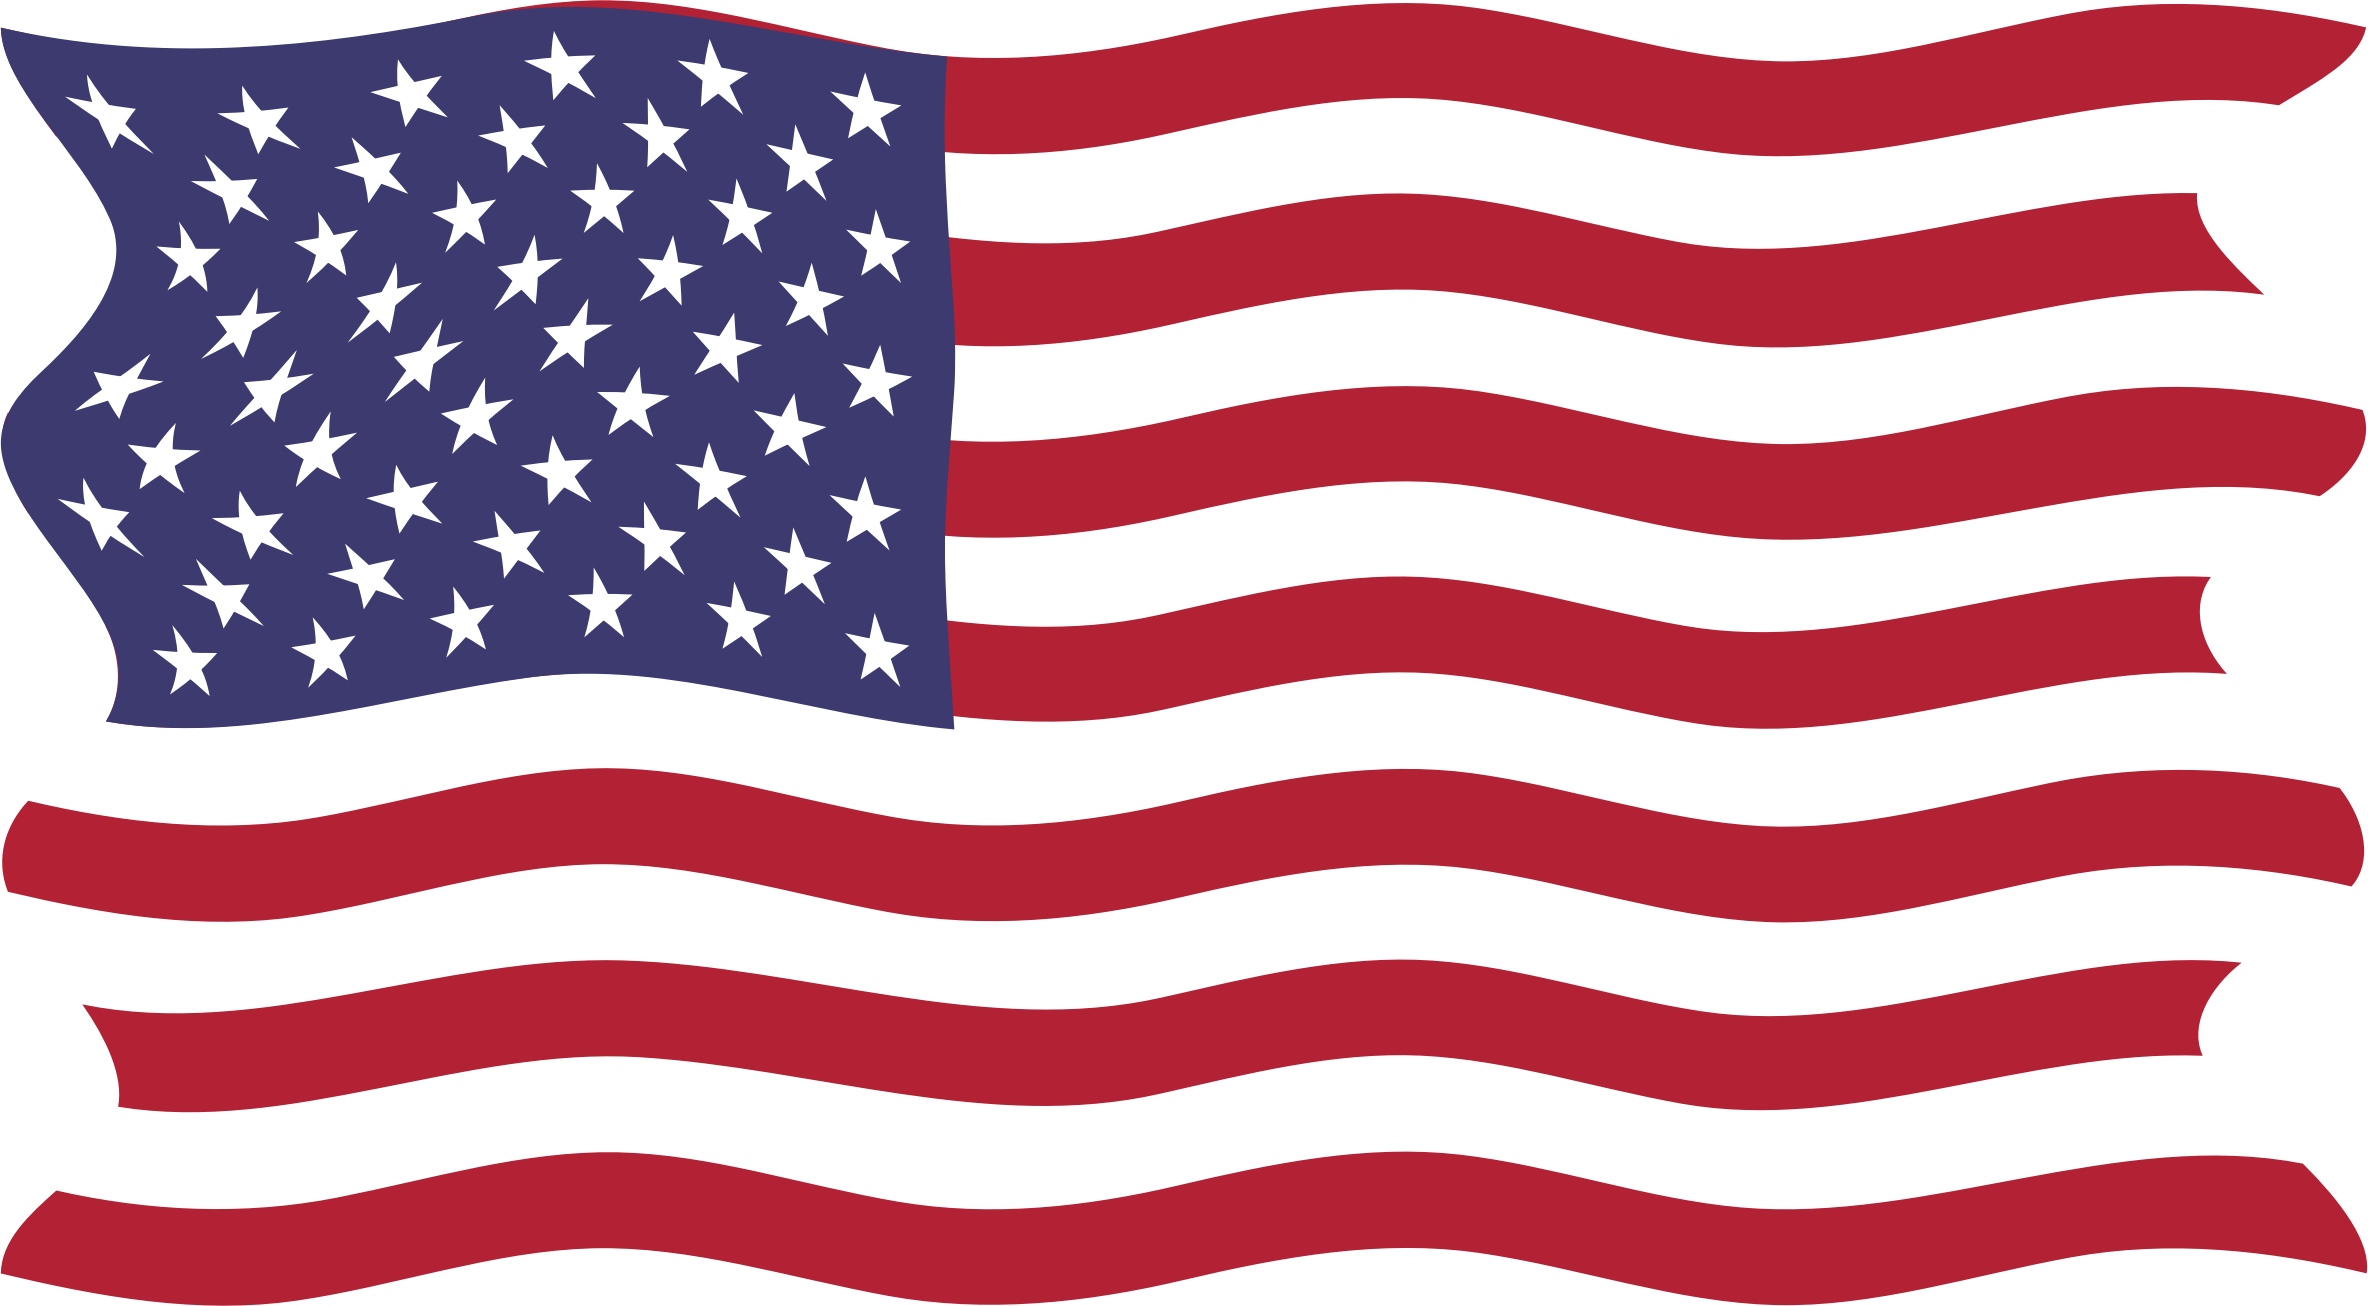 American flag vector png. Breezy icons free and